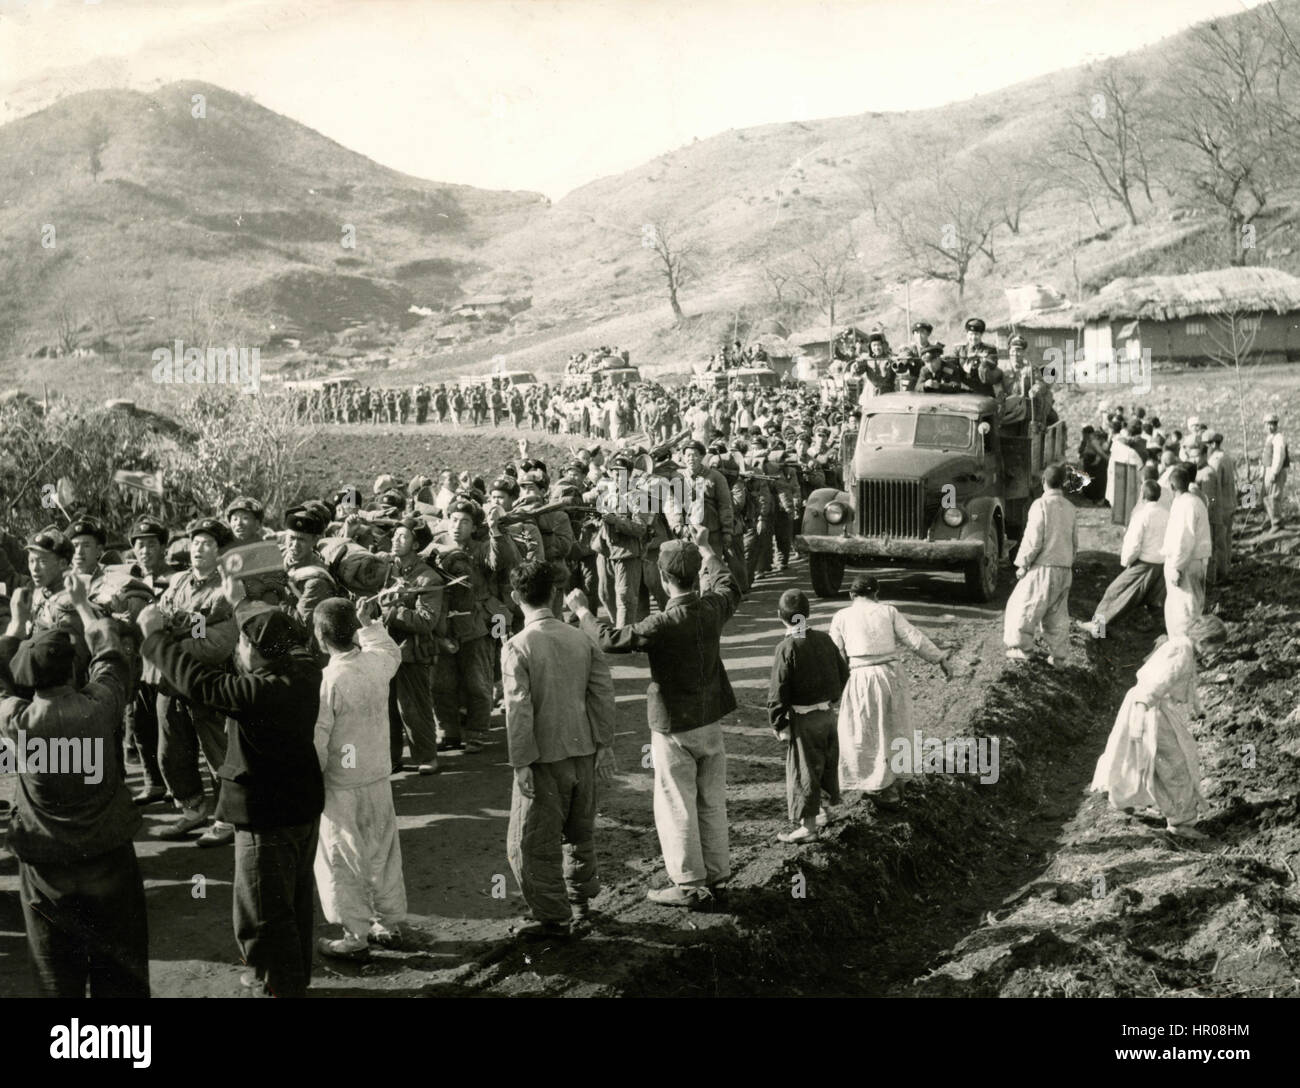 People bidding farewell to departing units of Chinese People's Volunteer Army CPVs, Korea 1958 - Stock Image